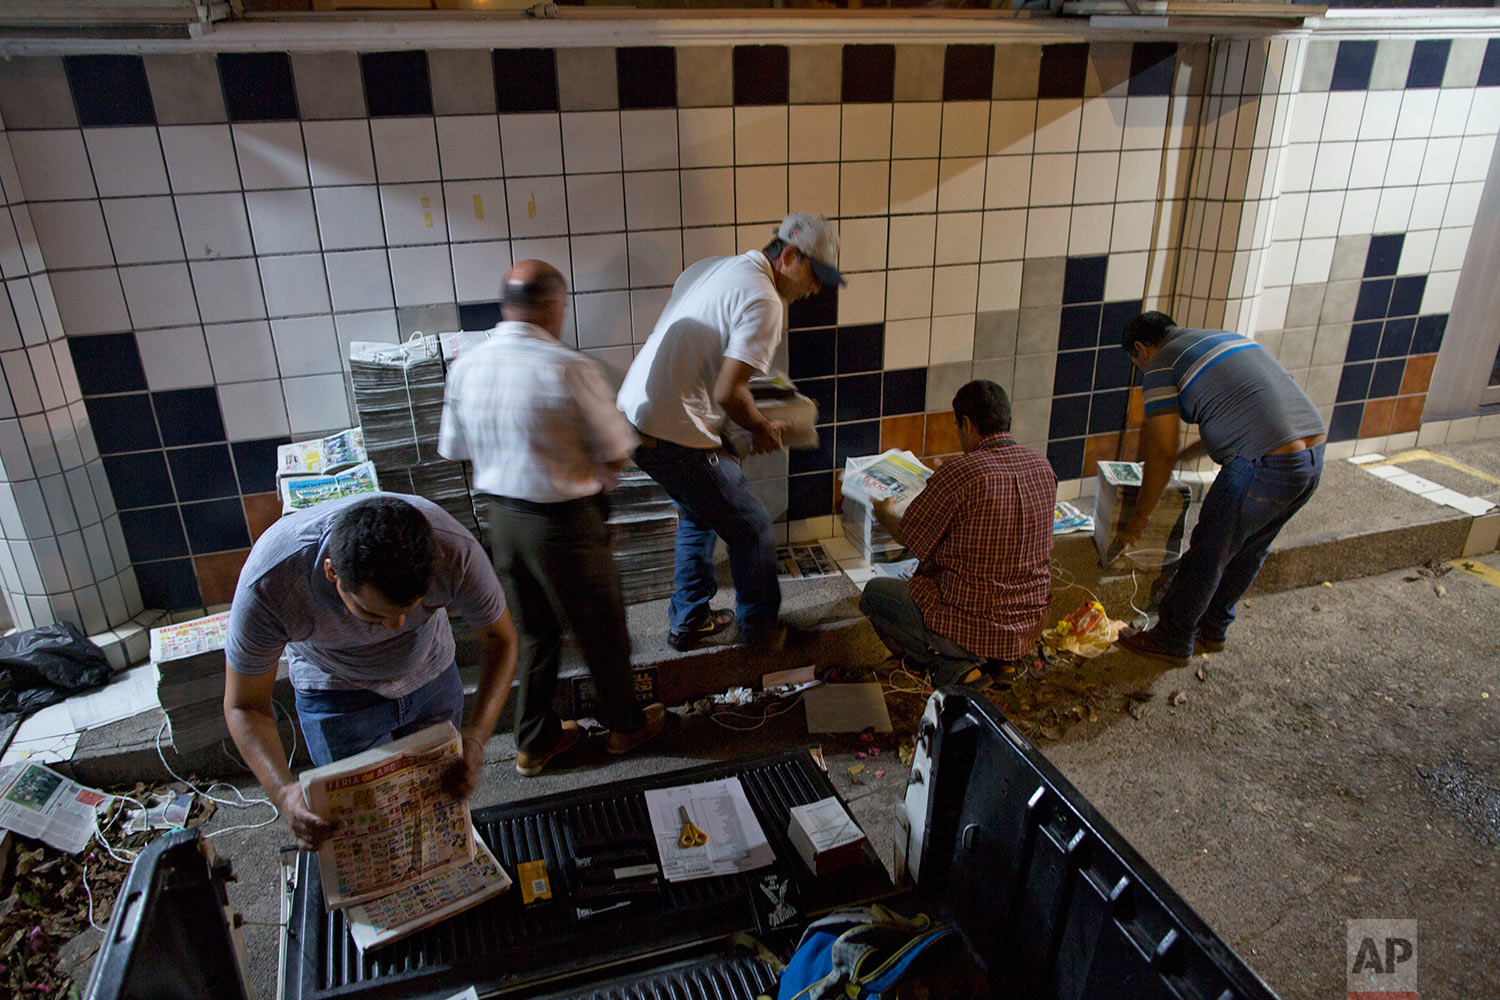 In this July 3, 2017 photo, drivers prepare to distribute Riodoce newspapers in Culiacan, Sinaloa state, Mexico. Riodoce, a weekly publication, was created in 2003 by five local journalists. Over time the paper earned a reputation for brave and honest coverage. (AP Photo/Enric Marti)